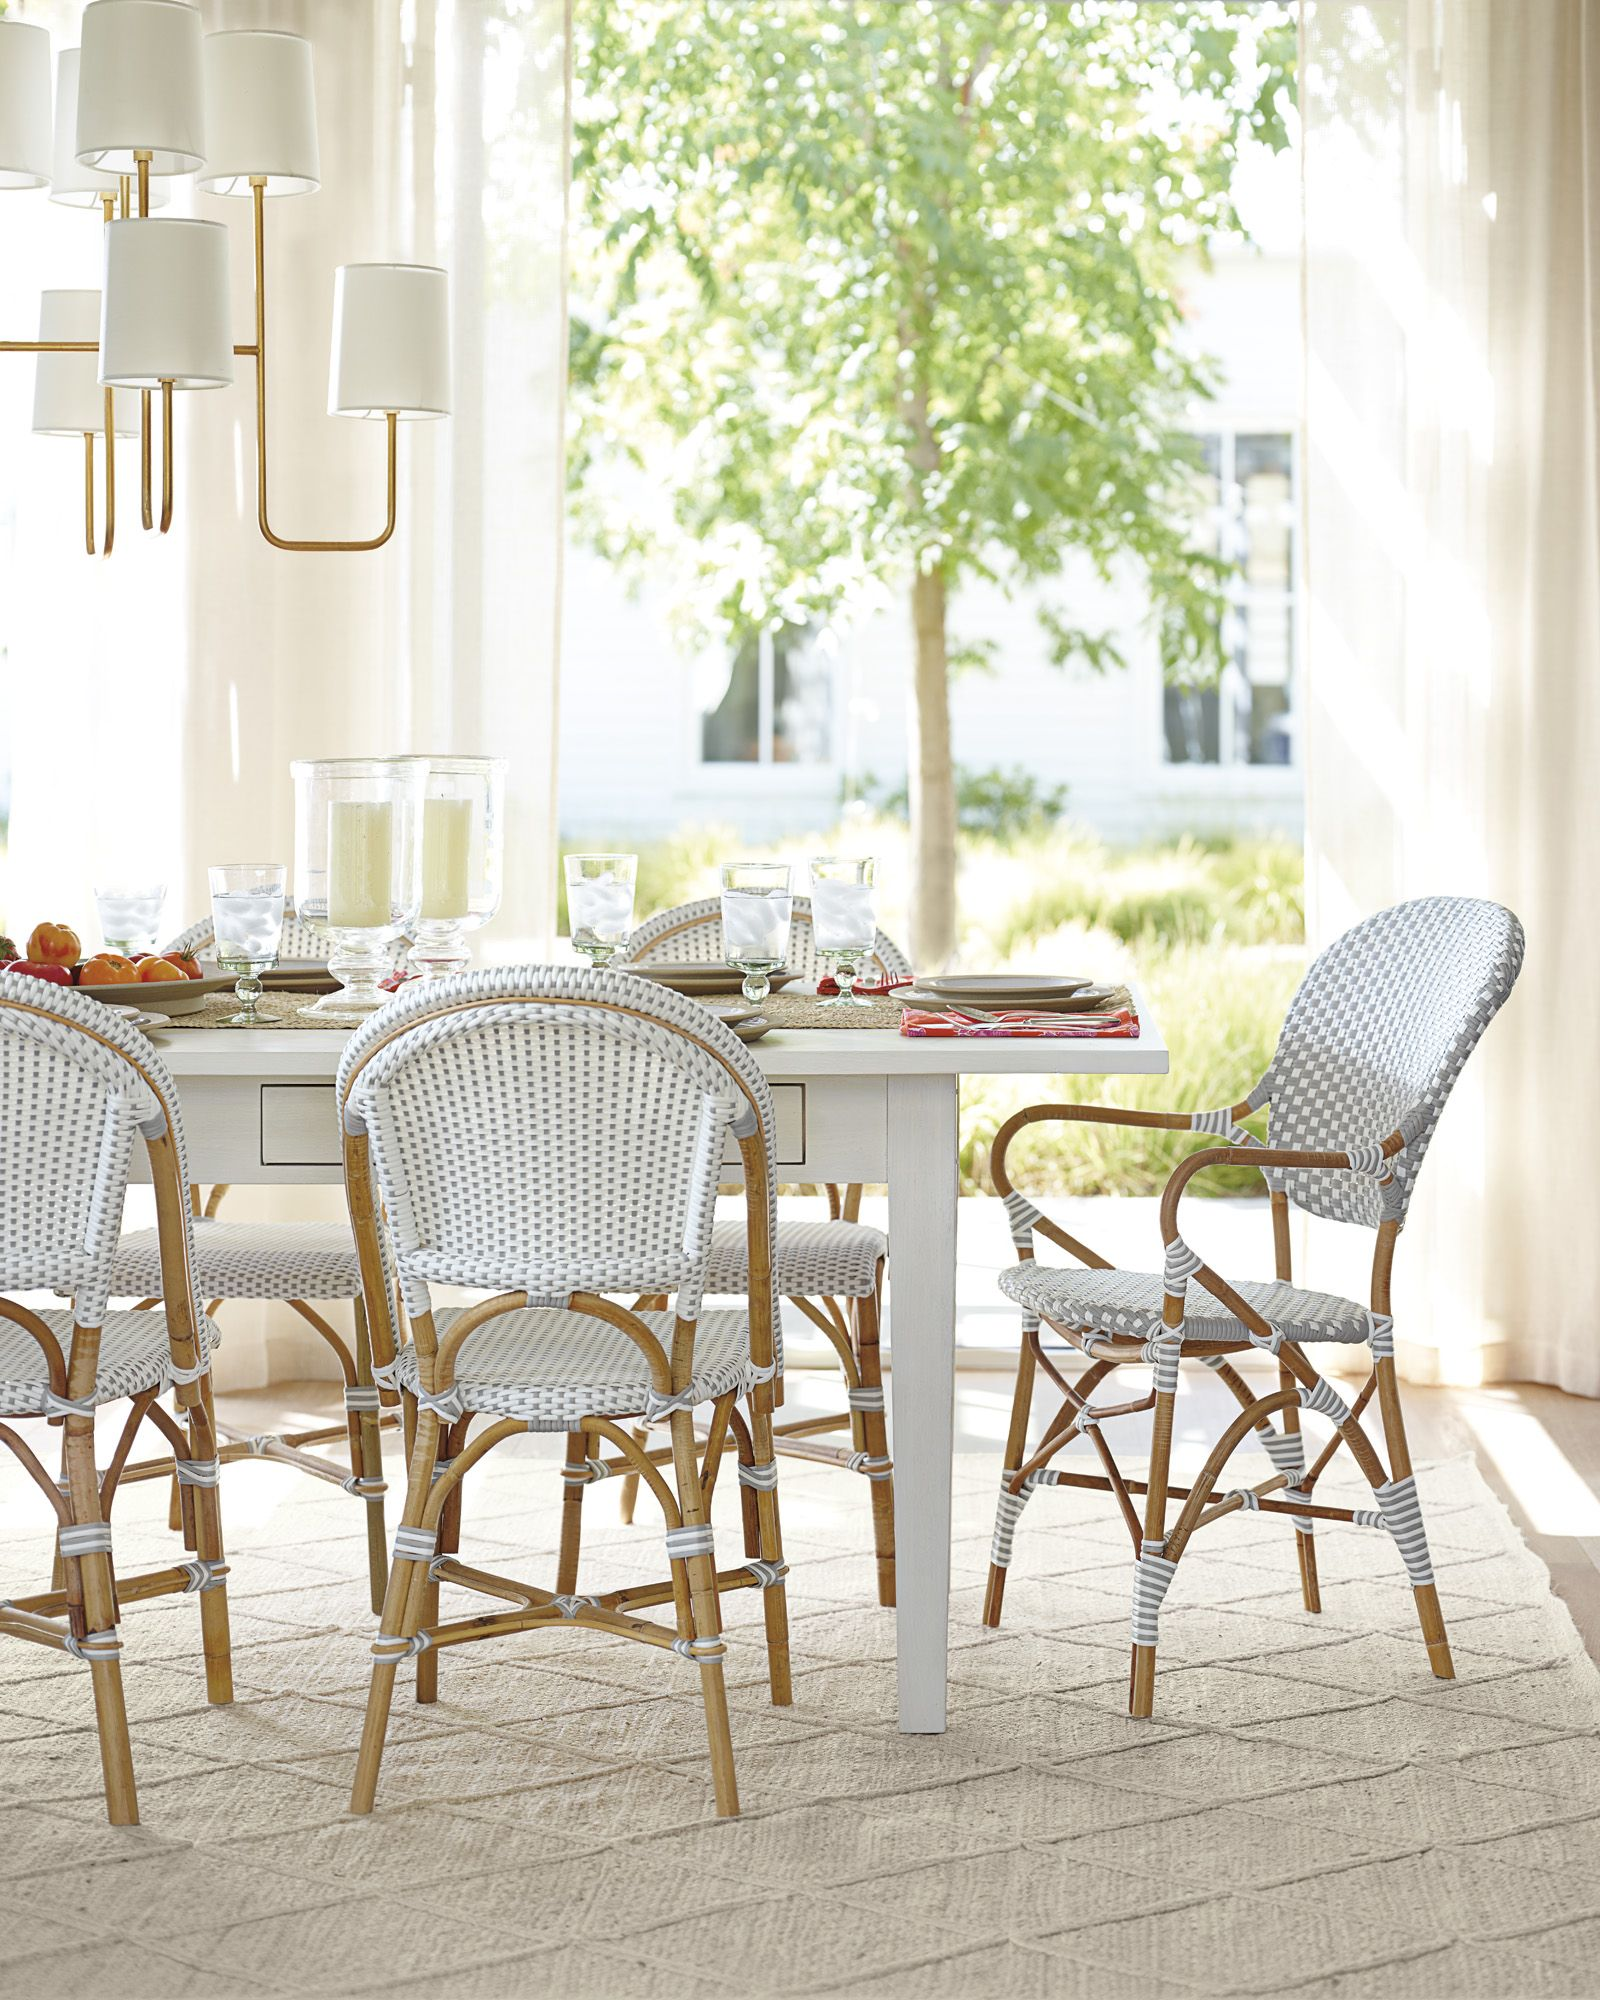 Lake cottage kitchen table and chandelier | lake cottage kitchen and ...